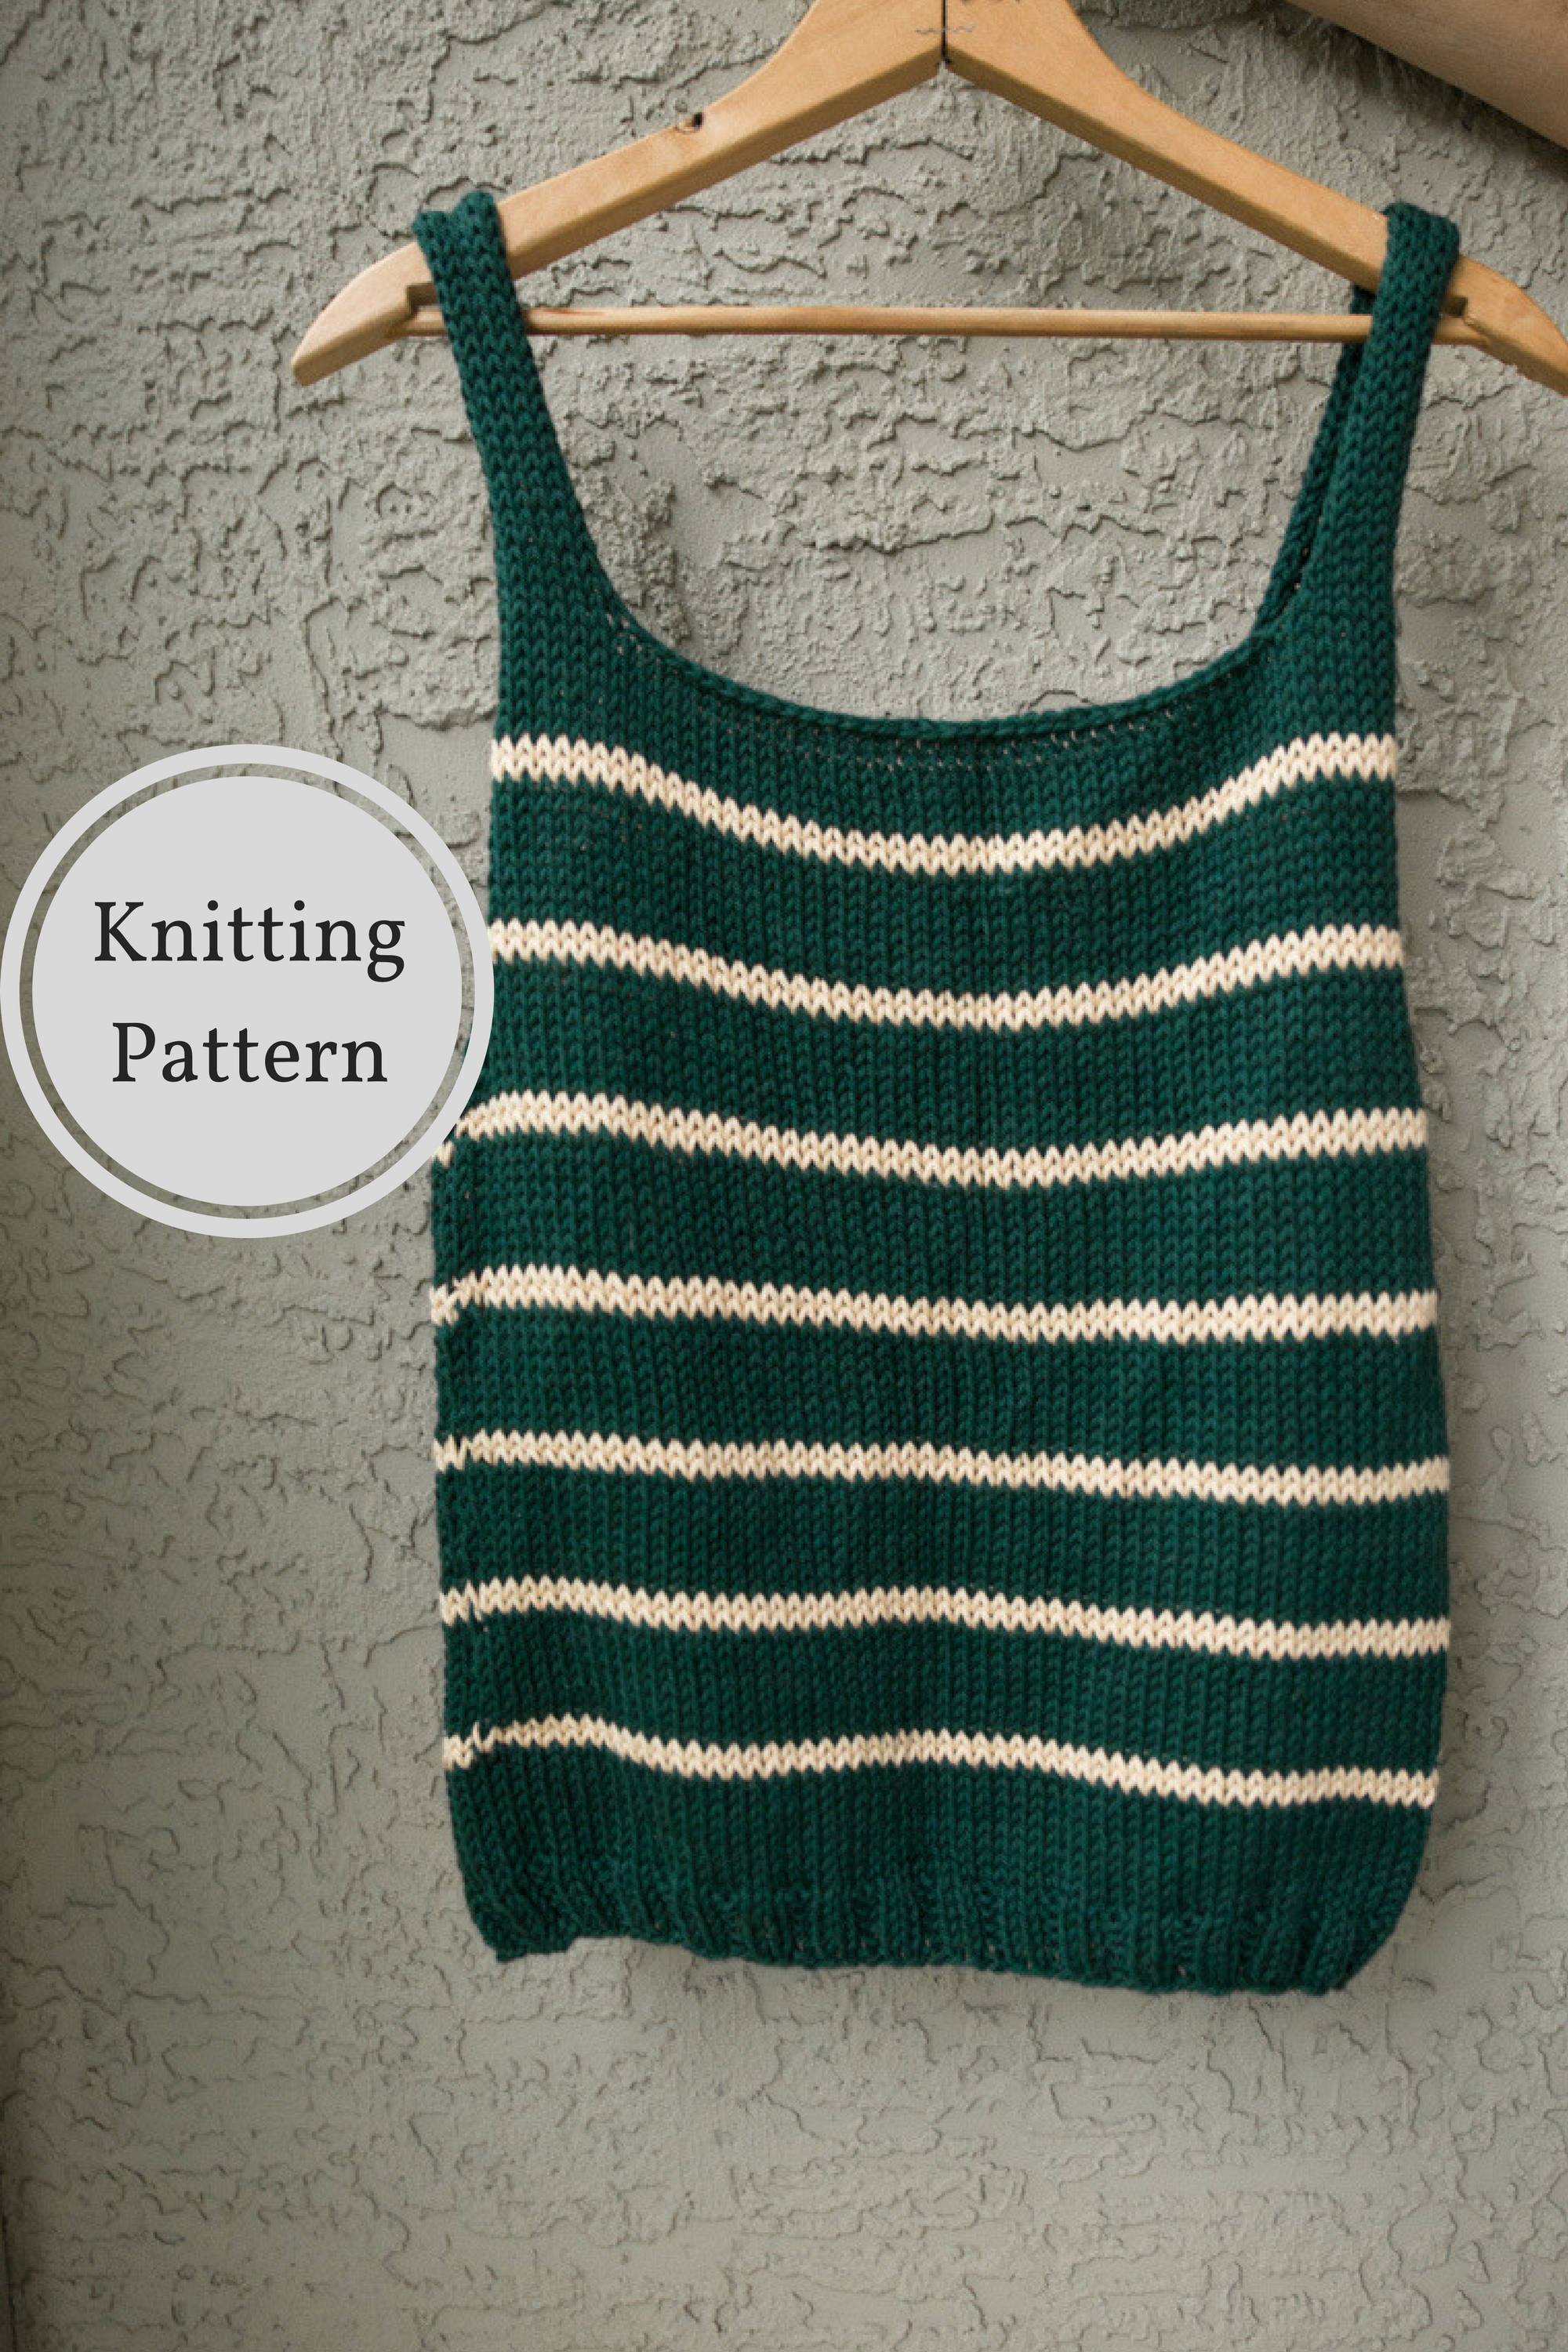 Knitting Pattern For Tank Top : KNITTING PATTERN Emerald Knitted Tank Top Pattern Knitted